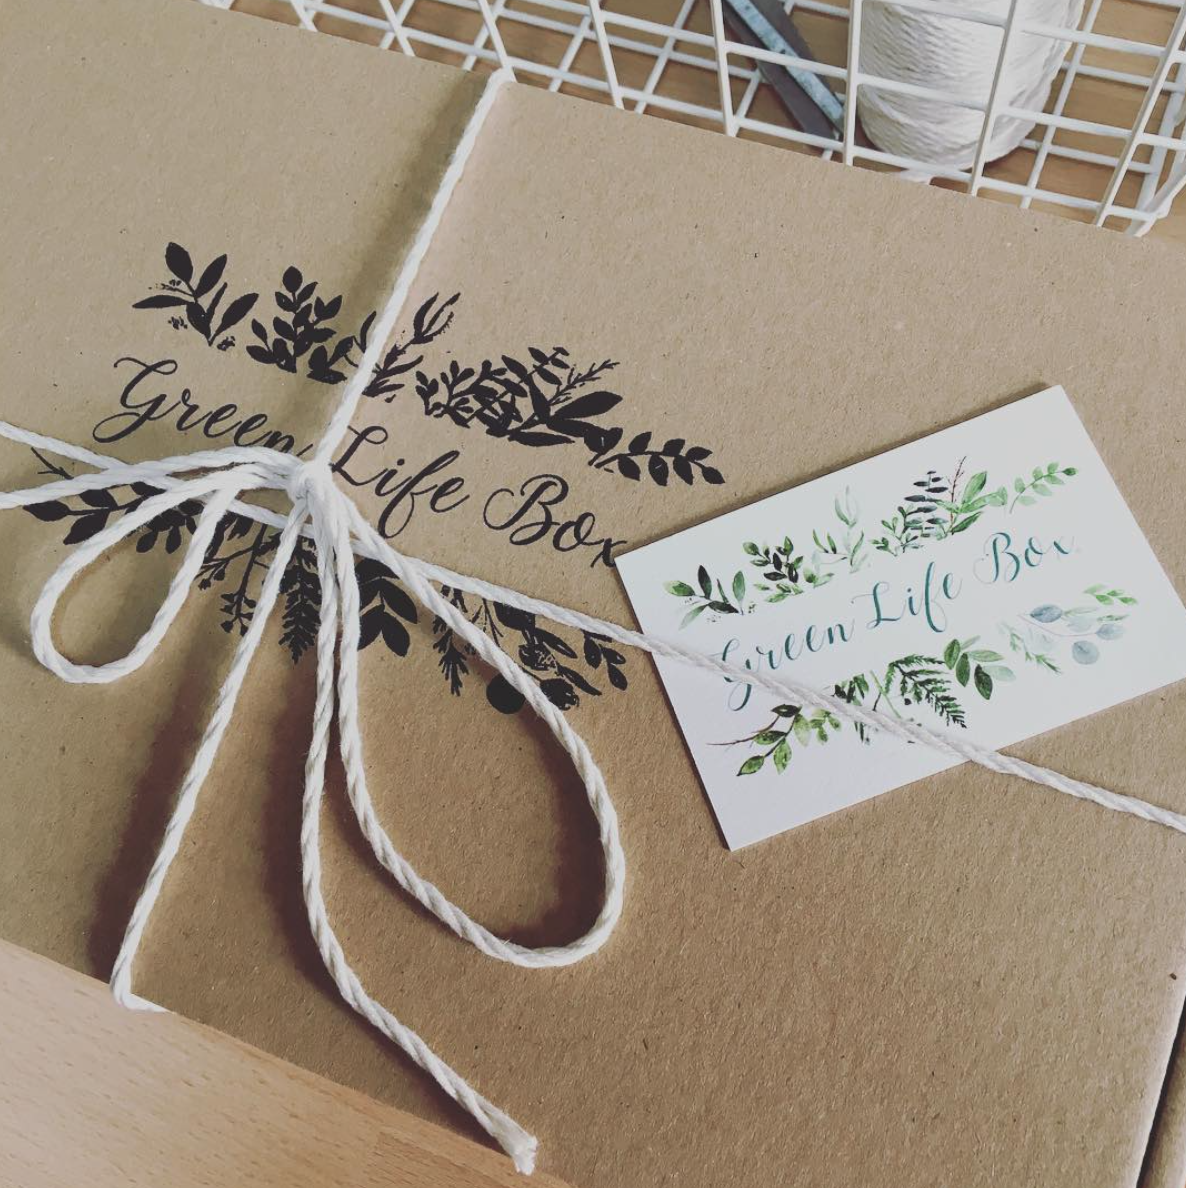 La greenlife Box